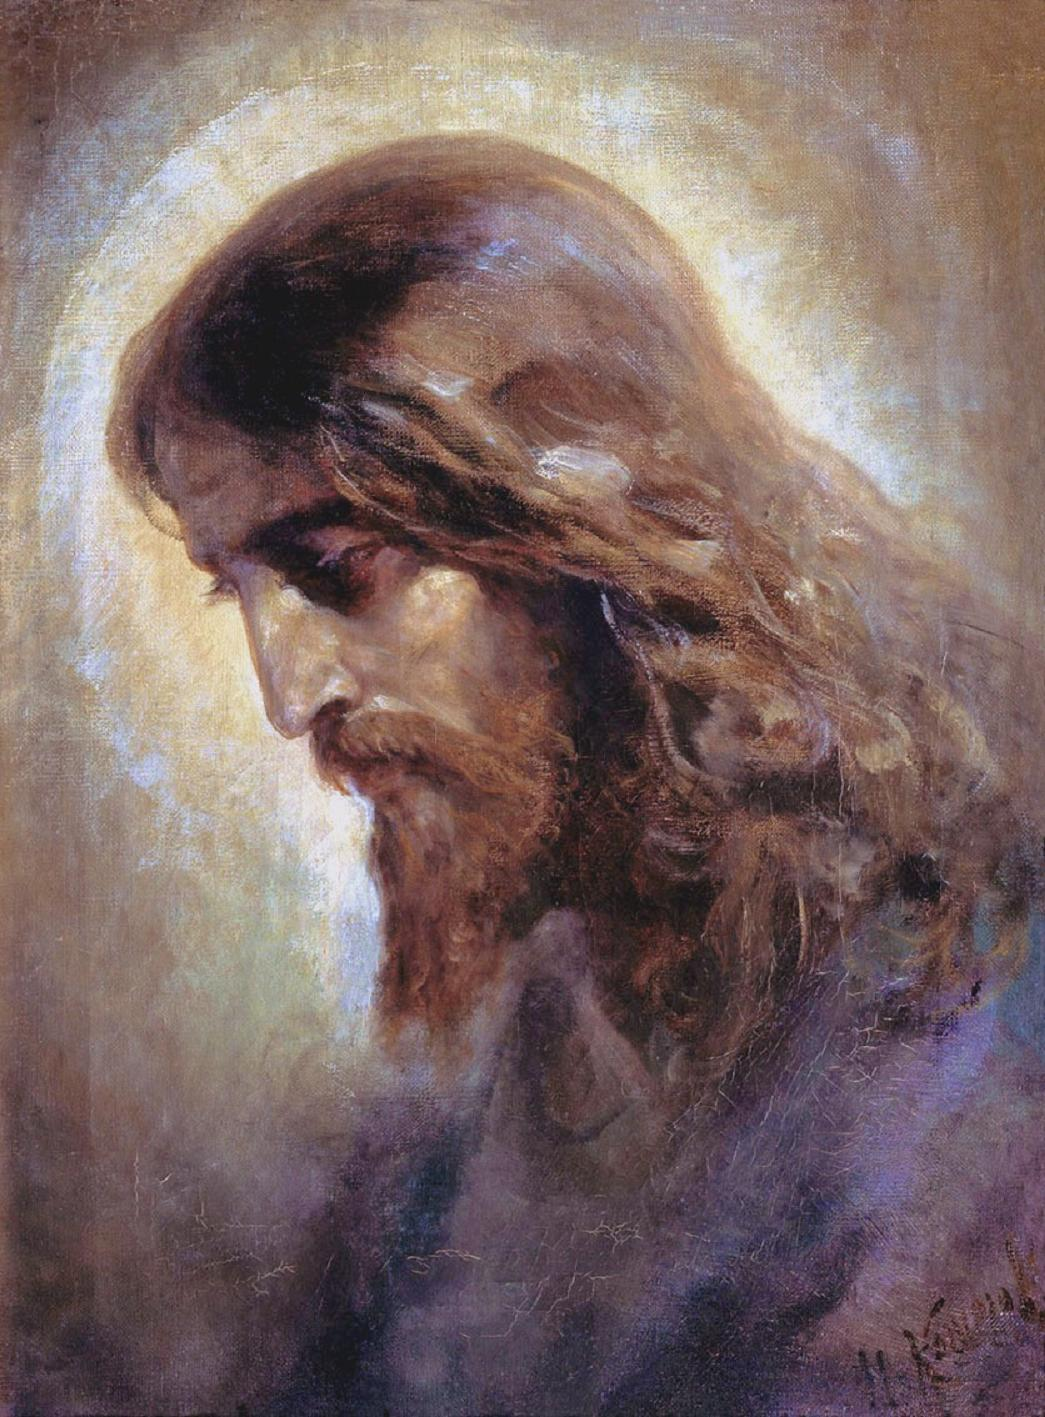 an analysis of the thought of the physical image of jesus christ As we study these 10 characteristics of jesus christ and try to develop them in ourselves, we can know that jesus christ is the way to true happiness and joy.